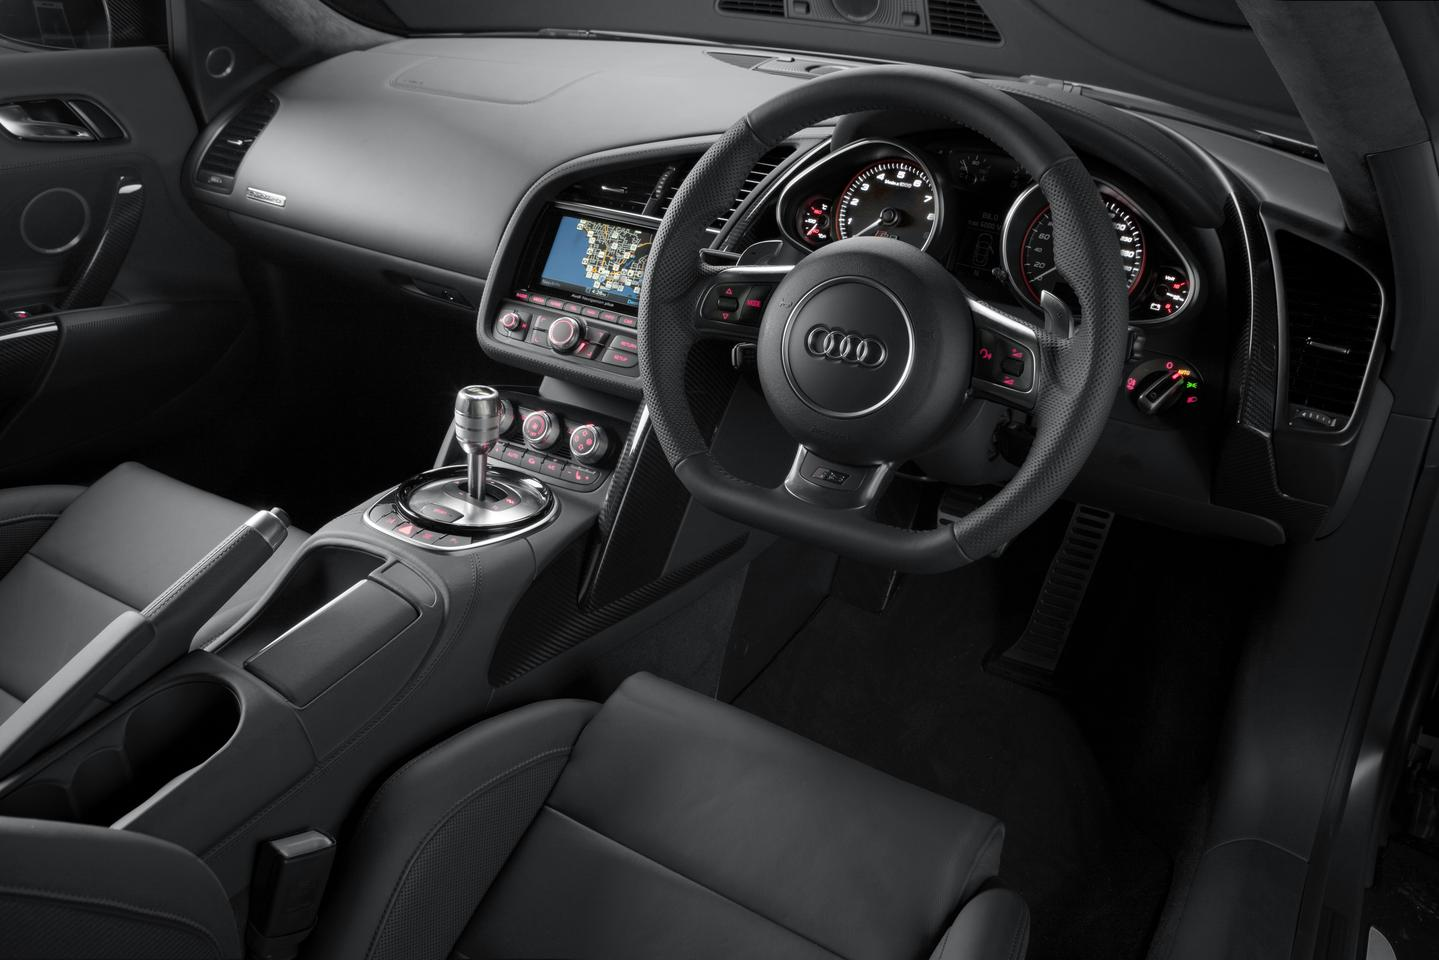 The interior of the Audi R8 V10 plus